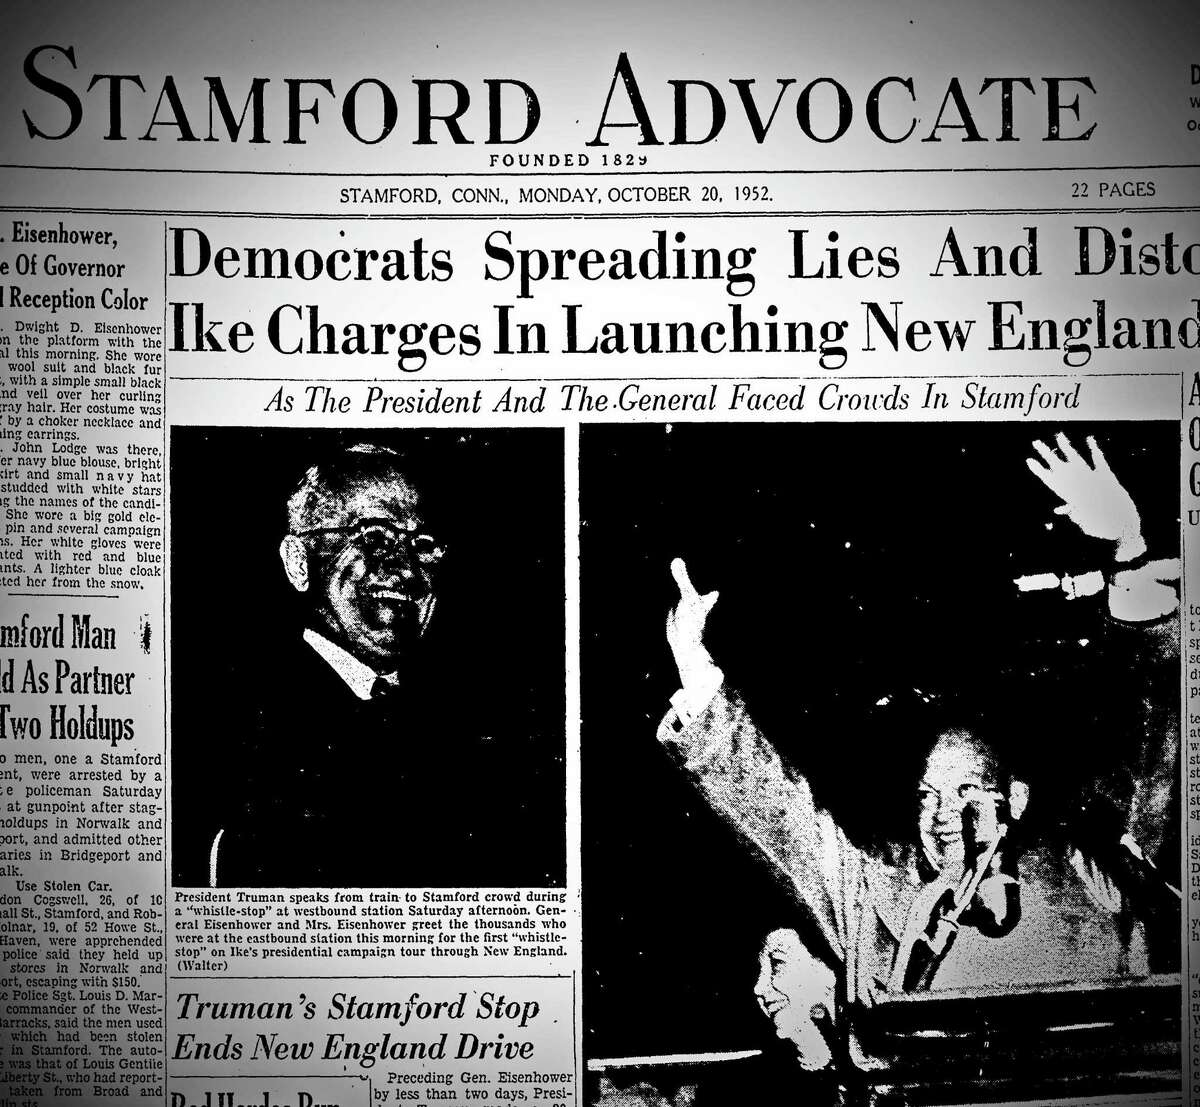 The front page of the Stamford Advocate on Oct. 20, 1952, which reported a visit from President Harry Truman and U.S. Gen. Dwight Eisenhower on a whistle stop in Stamford,